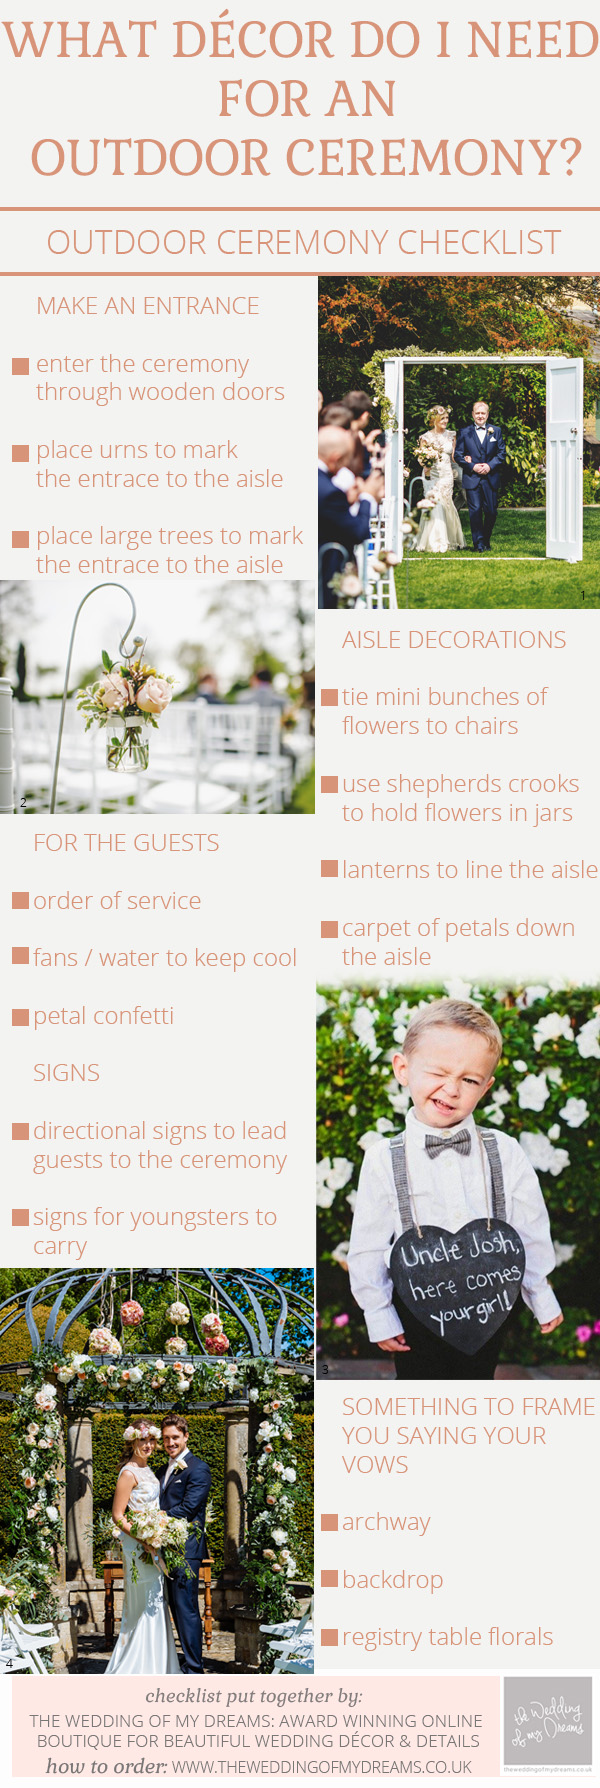 outdoor wedding ceremony decorations checklist